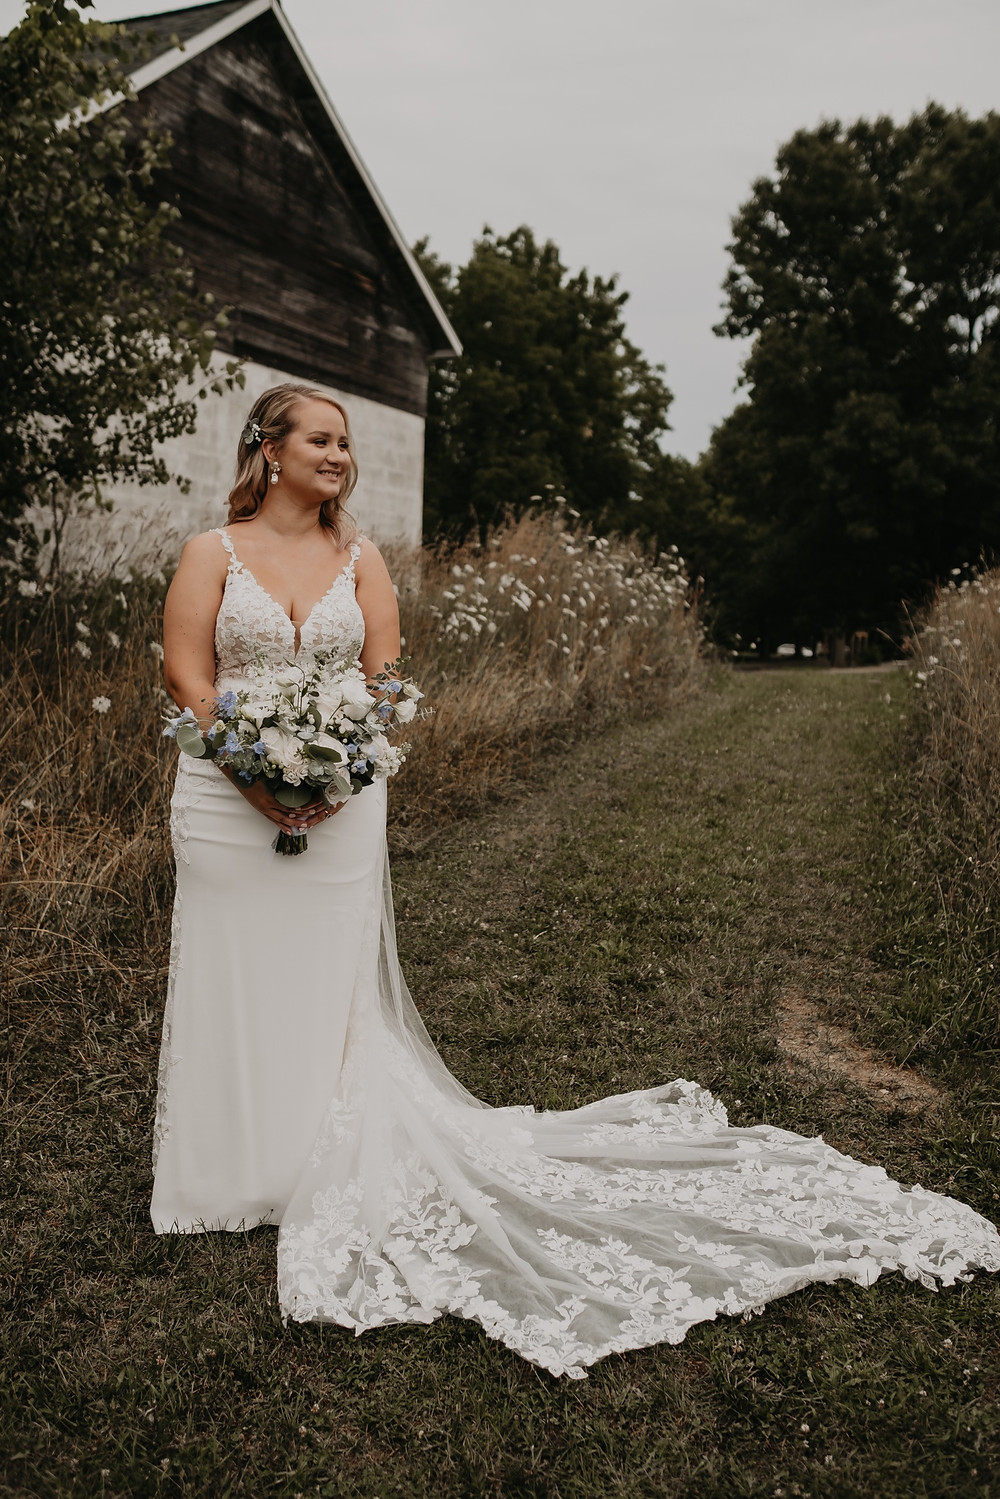 Bride holding wedding bouquet in field. Photographed by Nicole Leanne Photography.